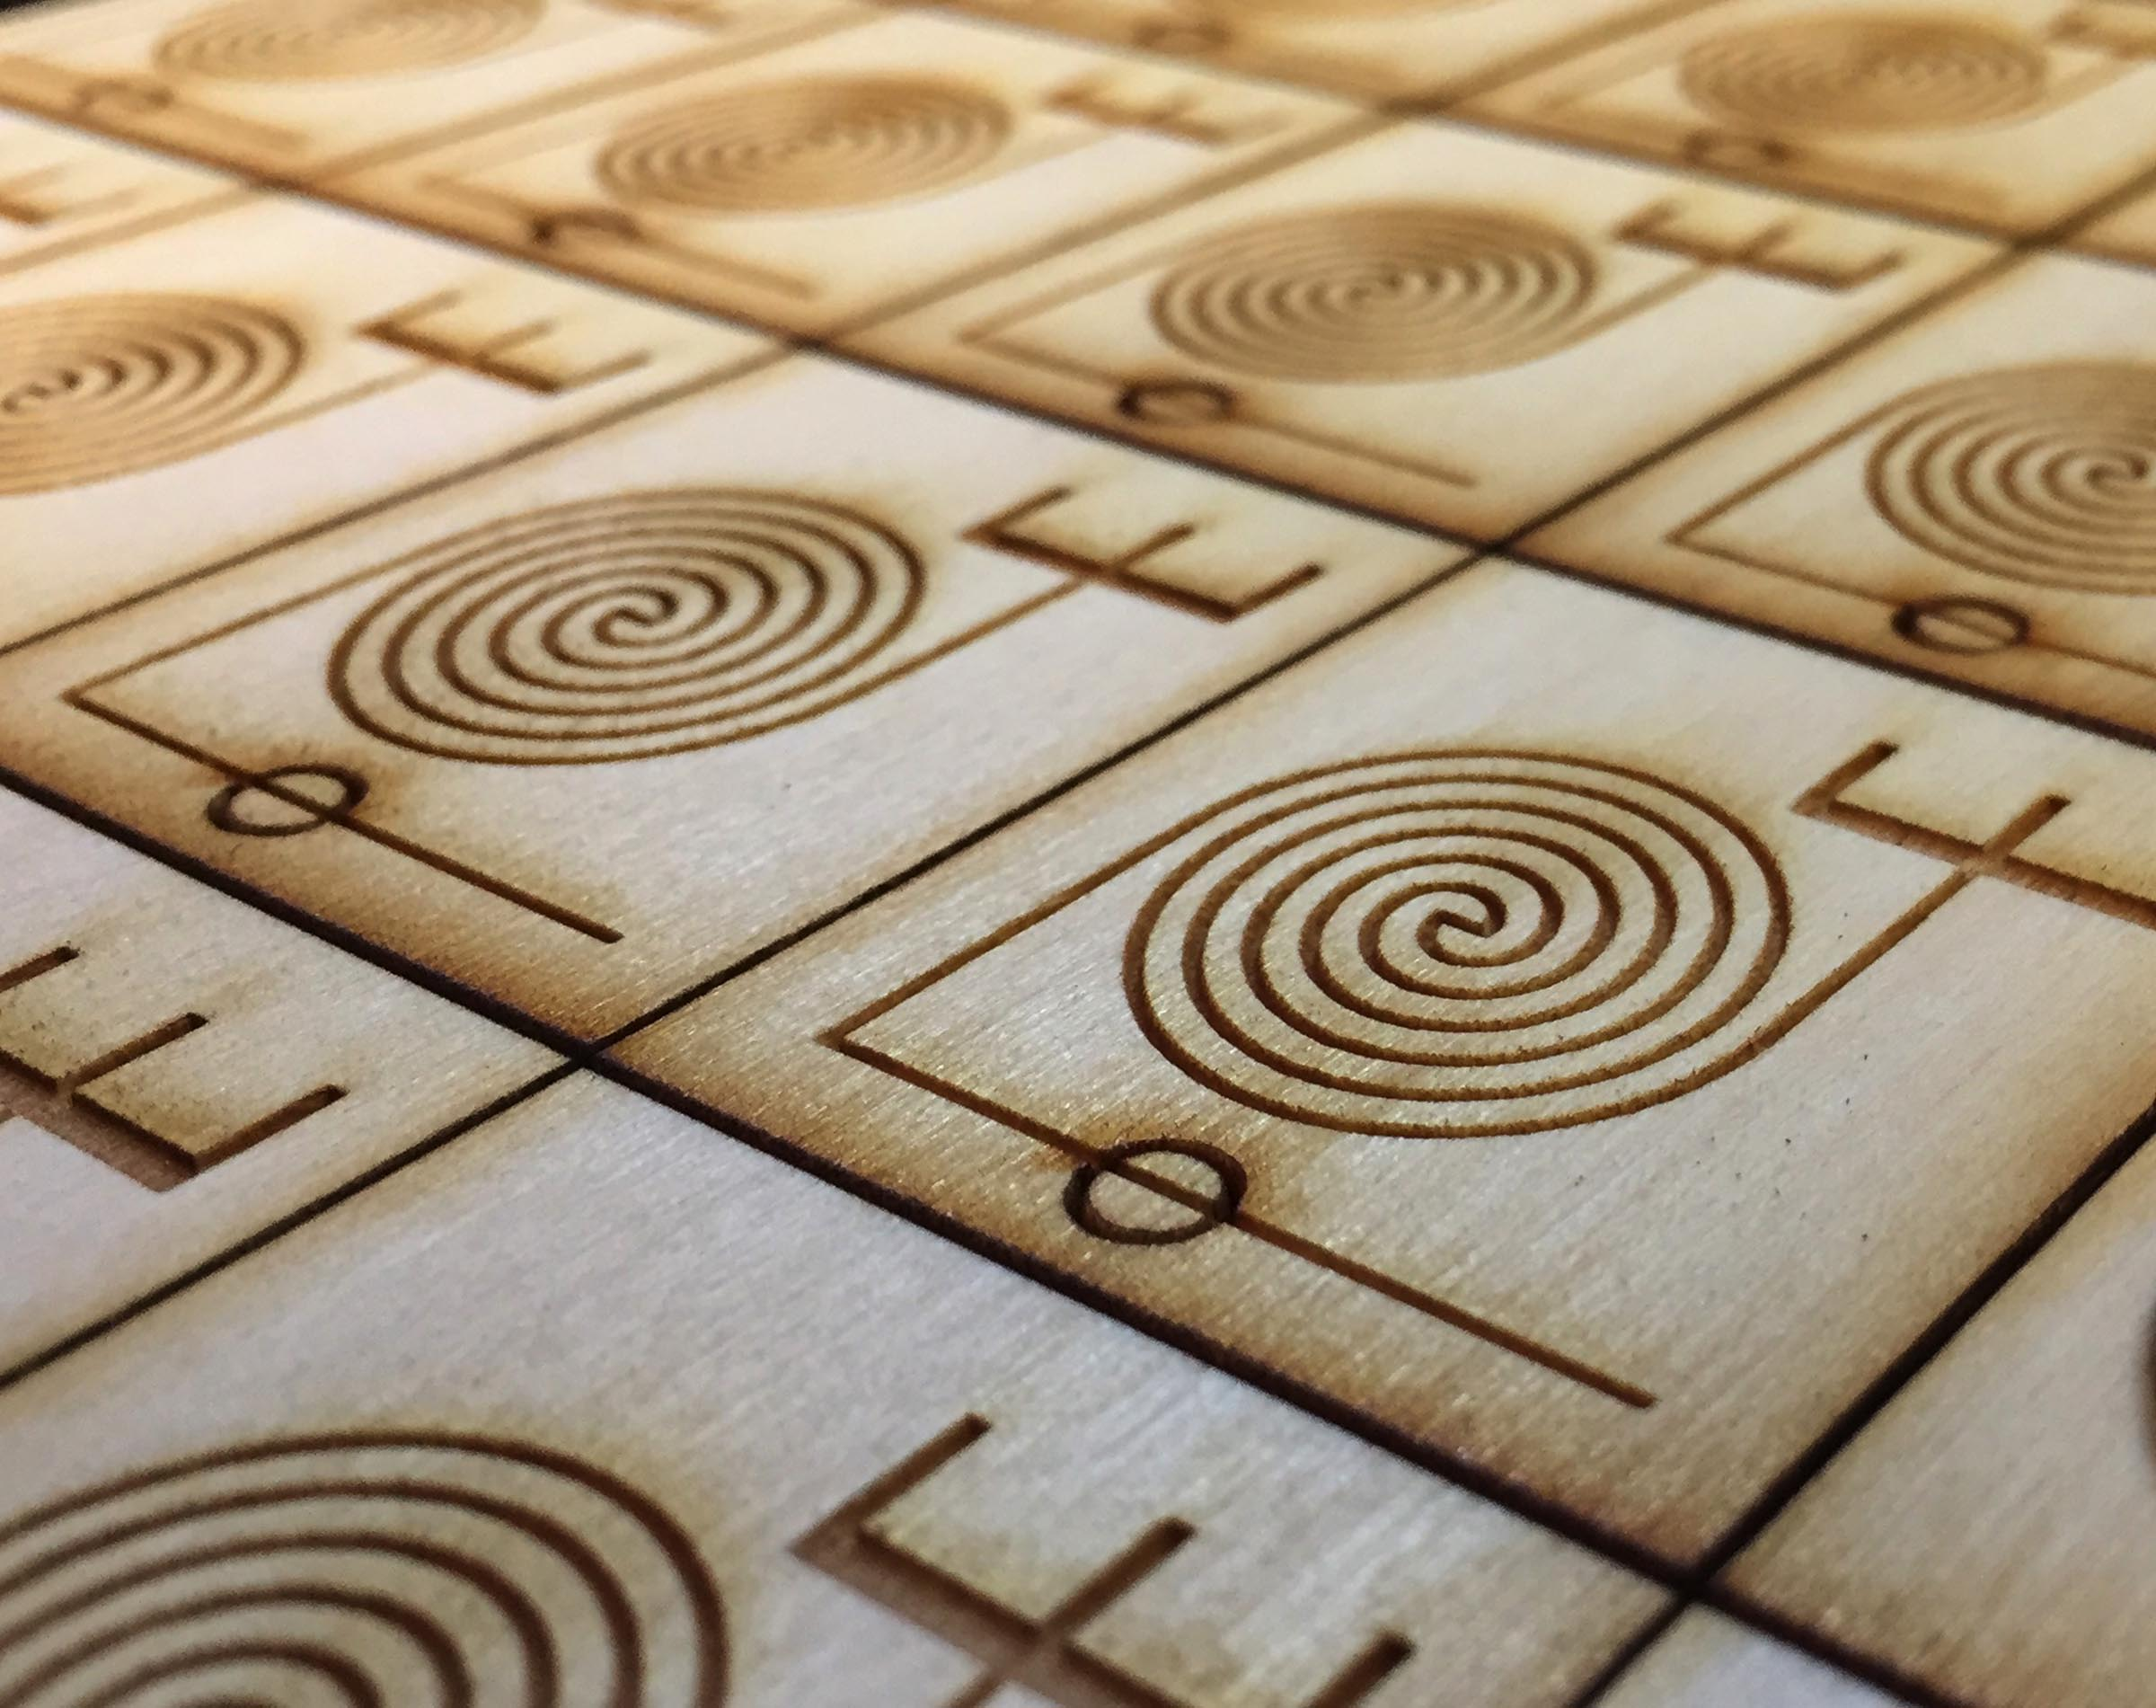 Microfluidic devices made of wood